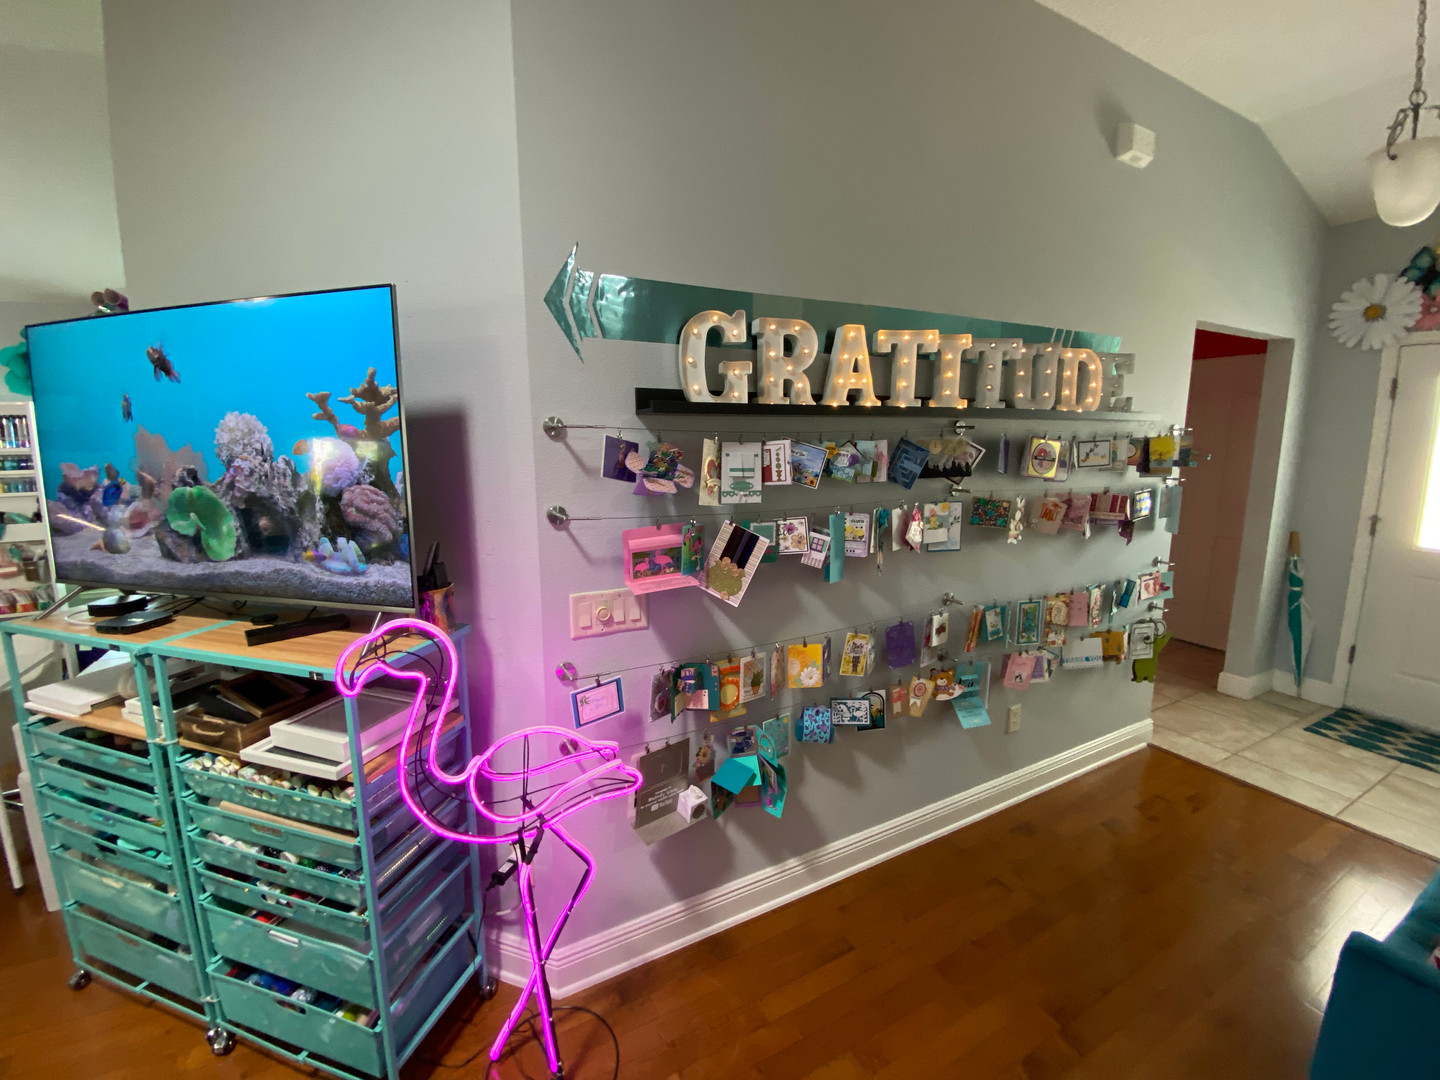 Gratitude Wall - Cards from You!